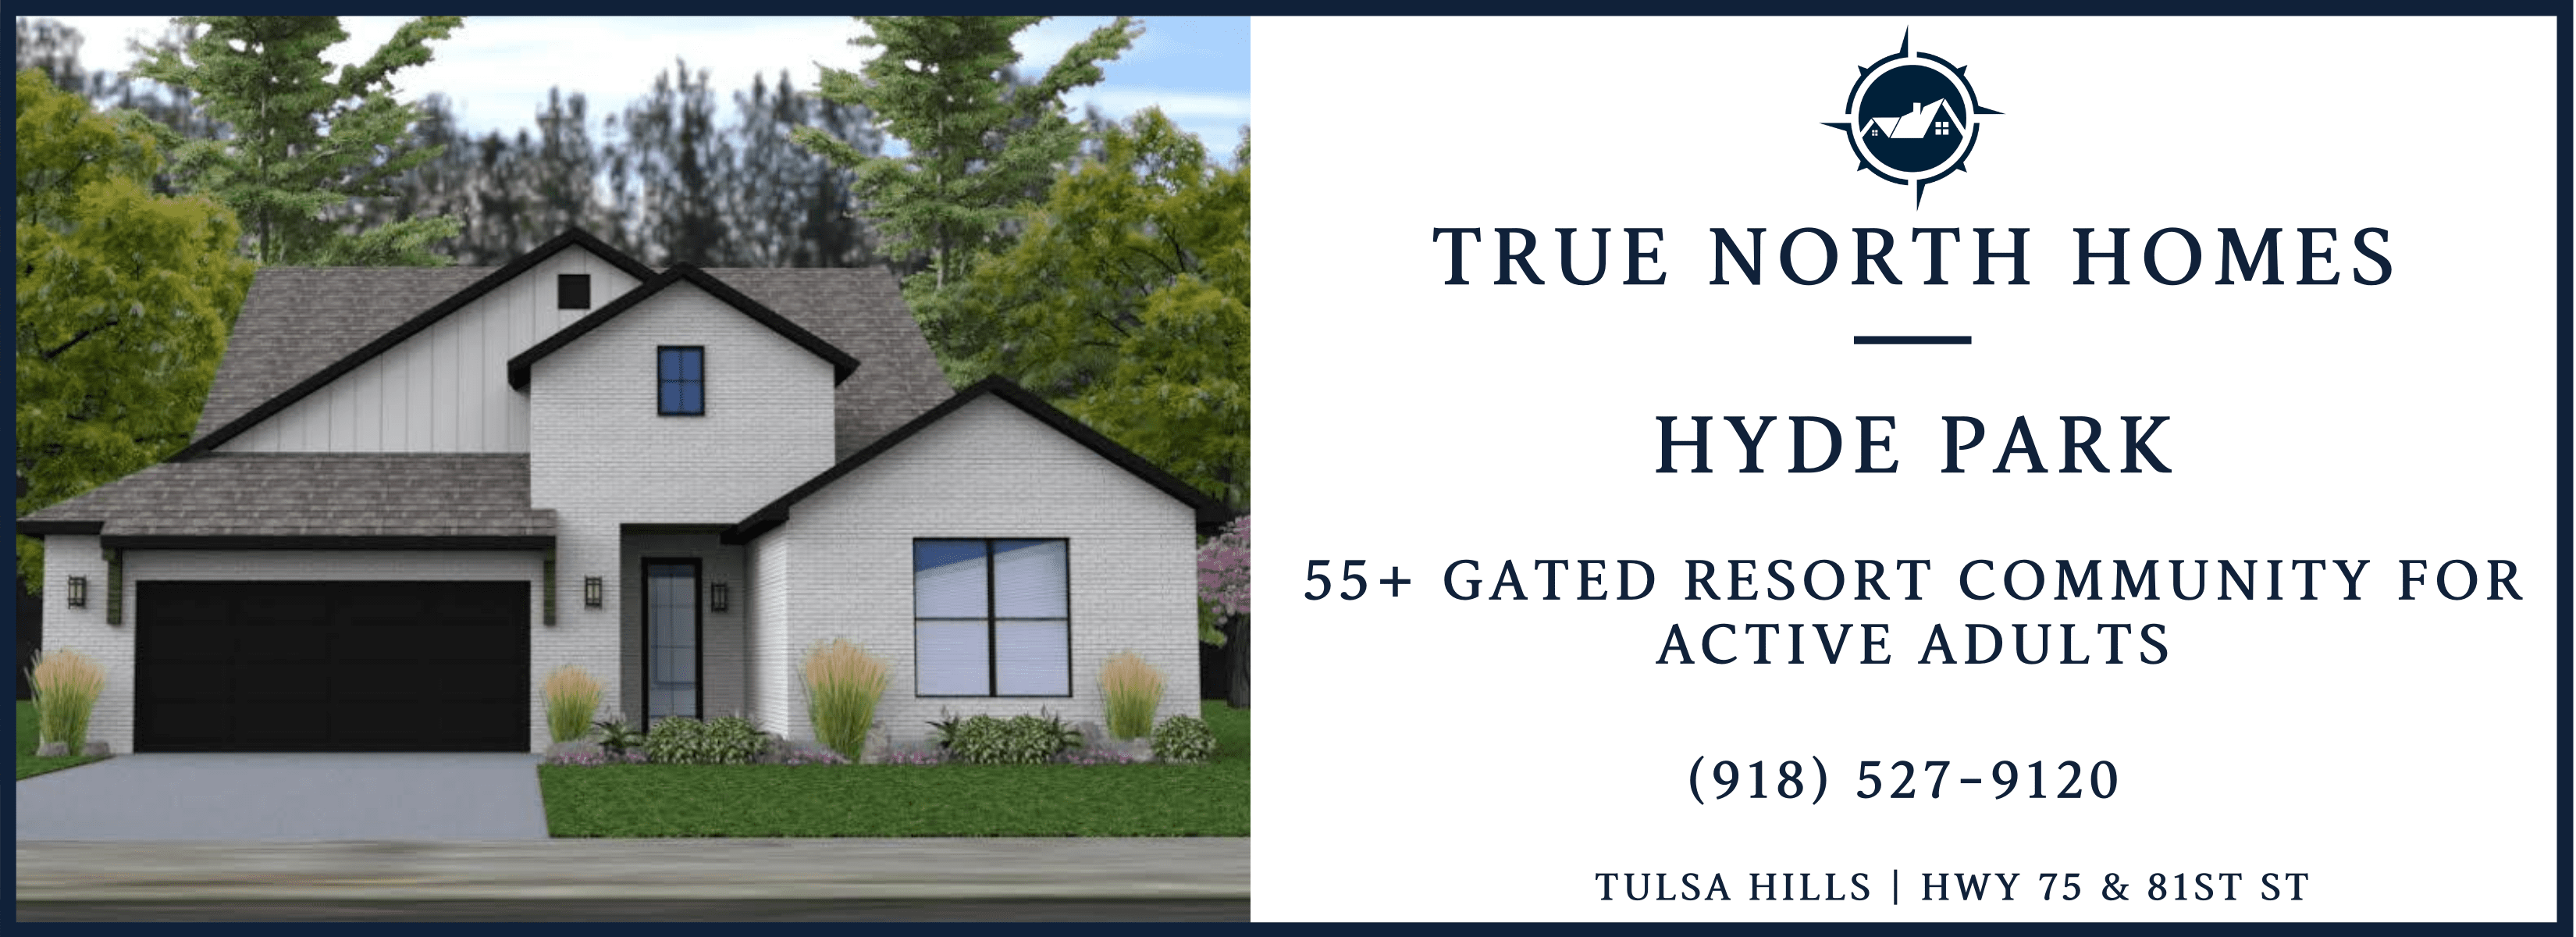 hyde park true north homes